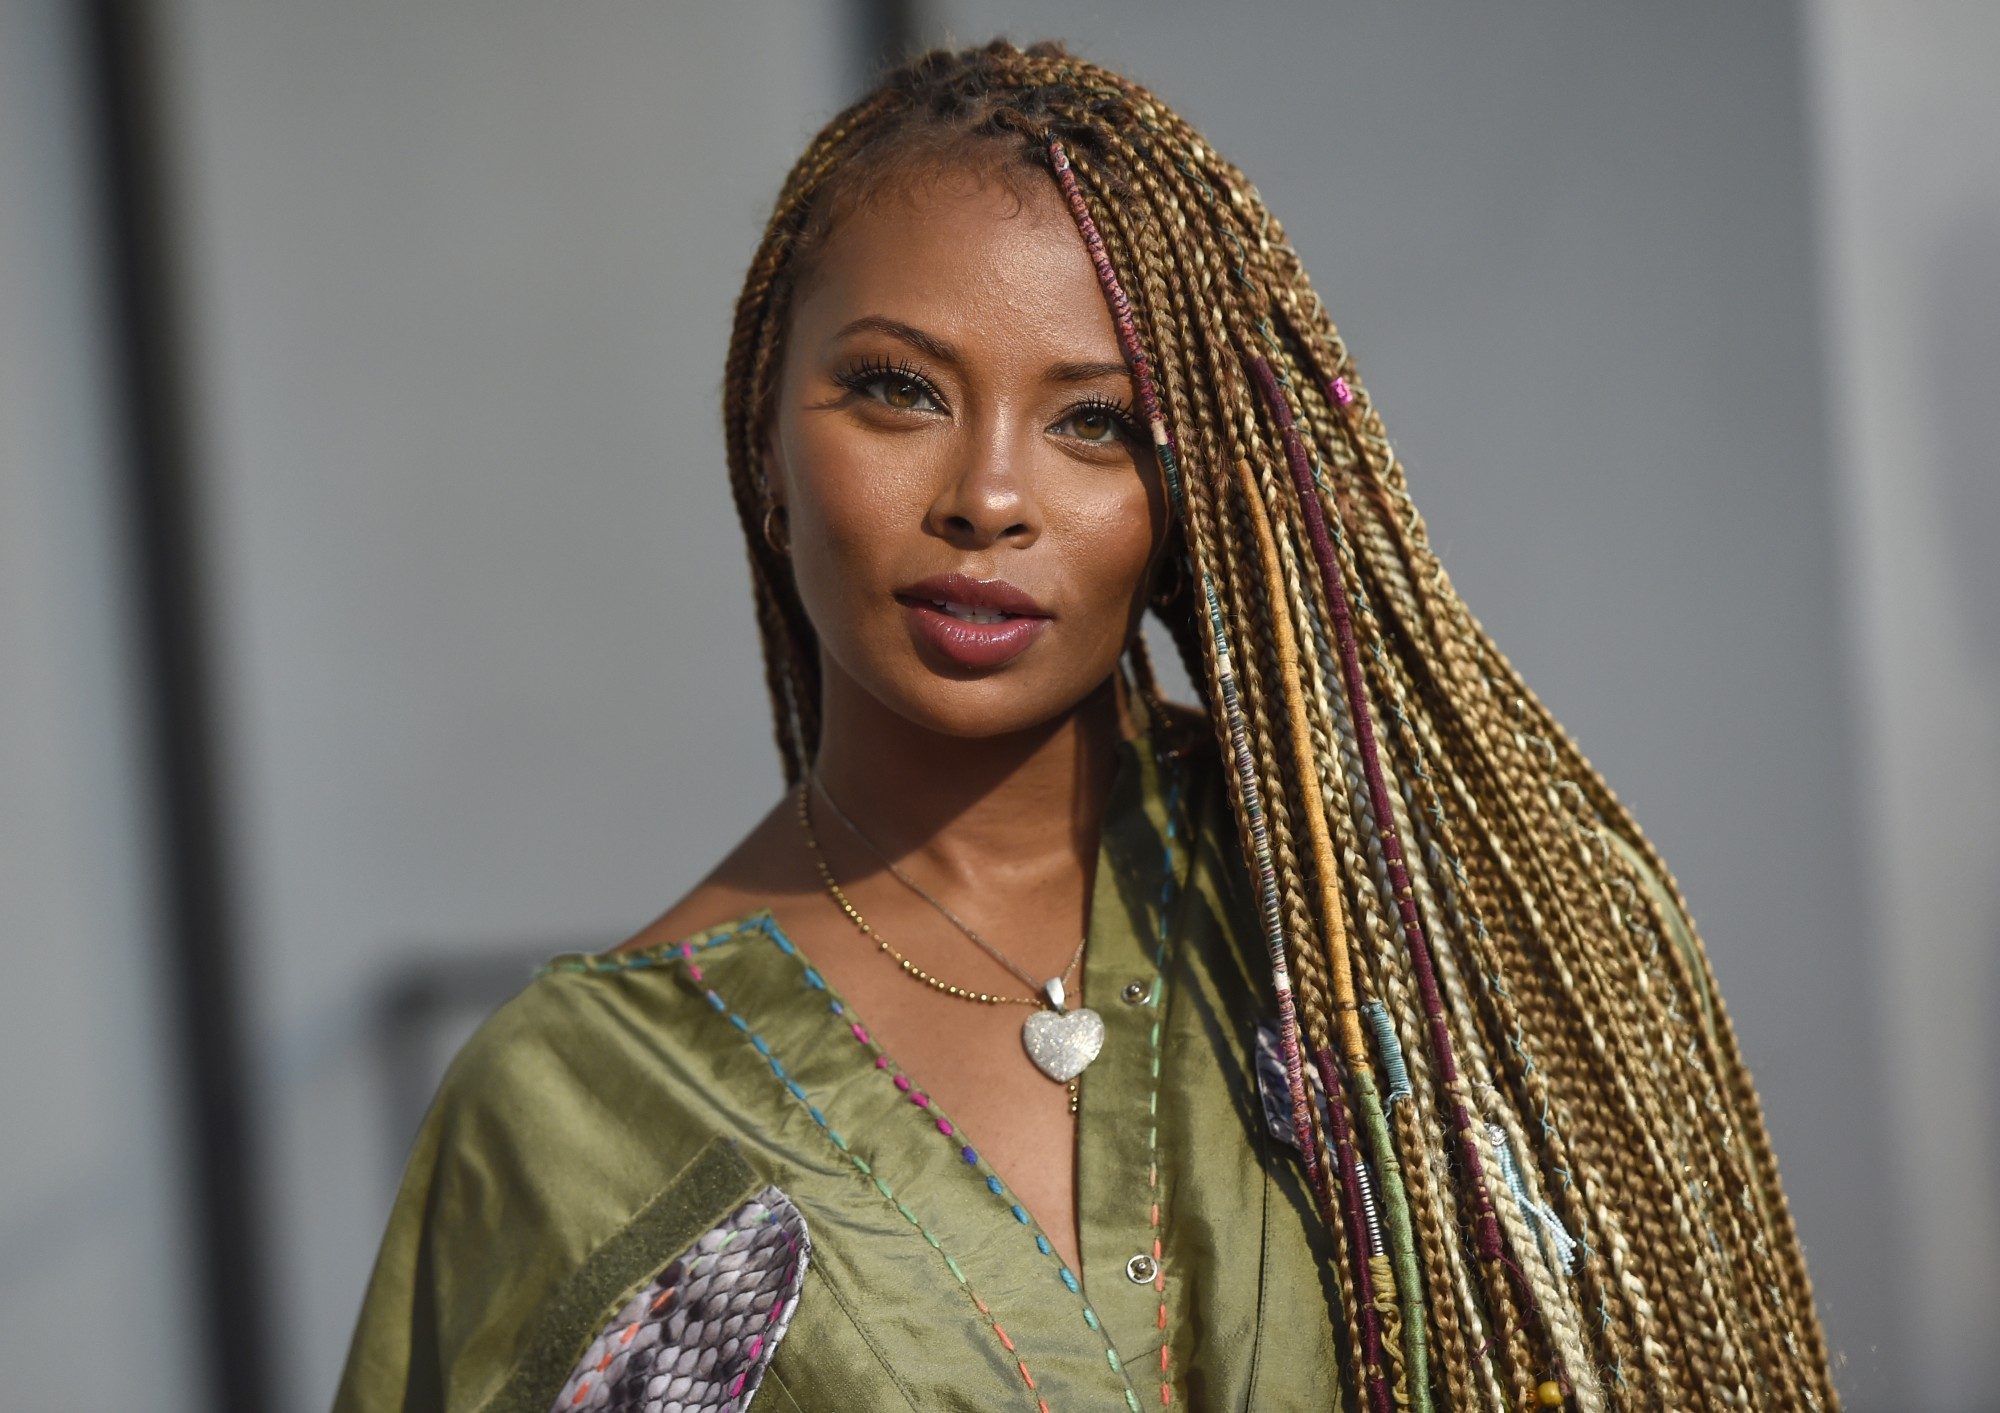 """eva-marcille-brings-up-michael-jackson-and-says-that-the-real-virus-is-hate-see-the-video-she-shared"""